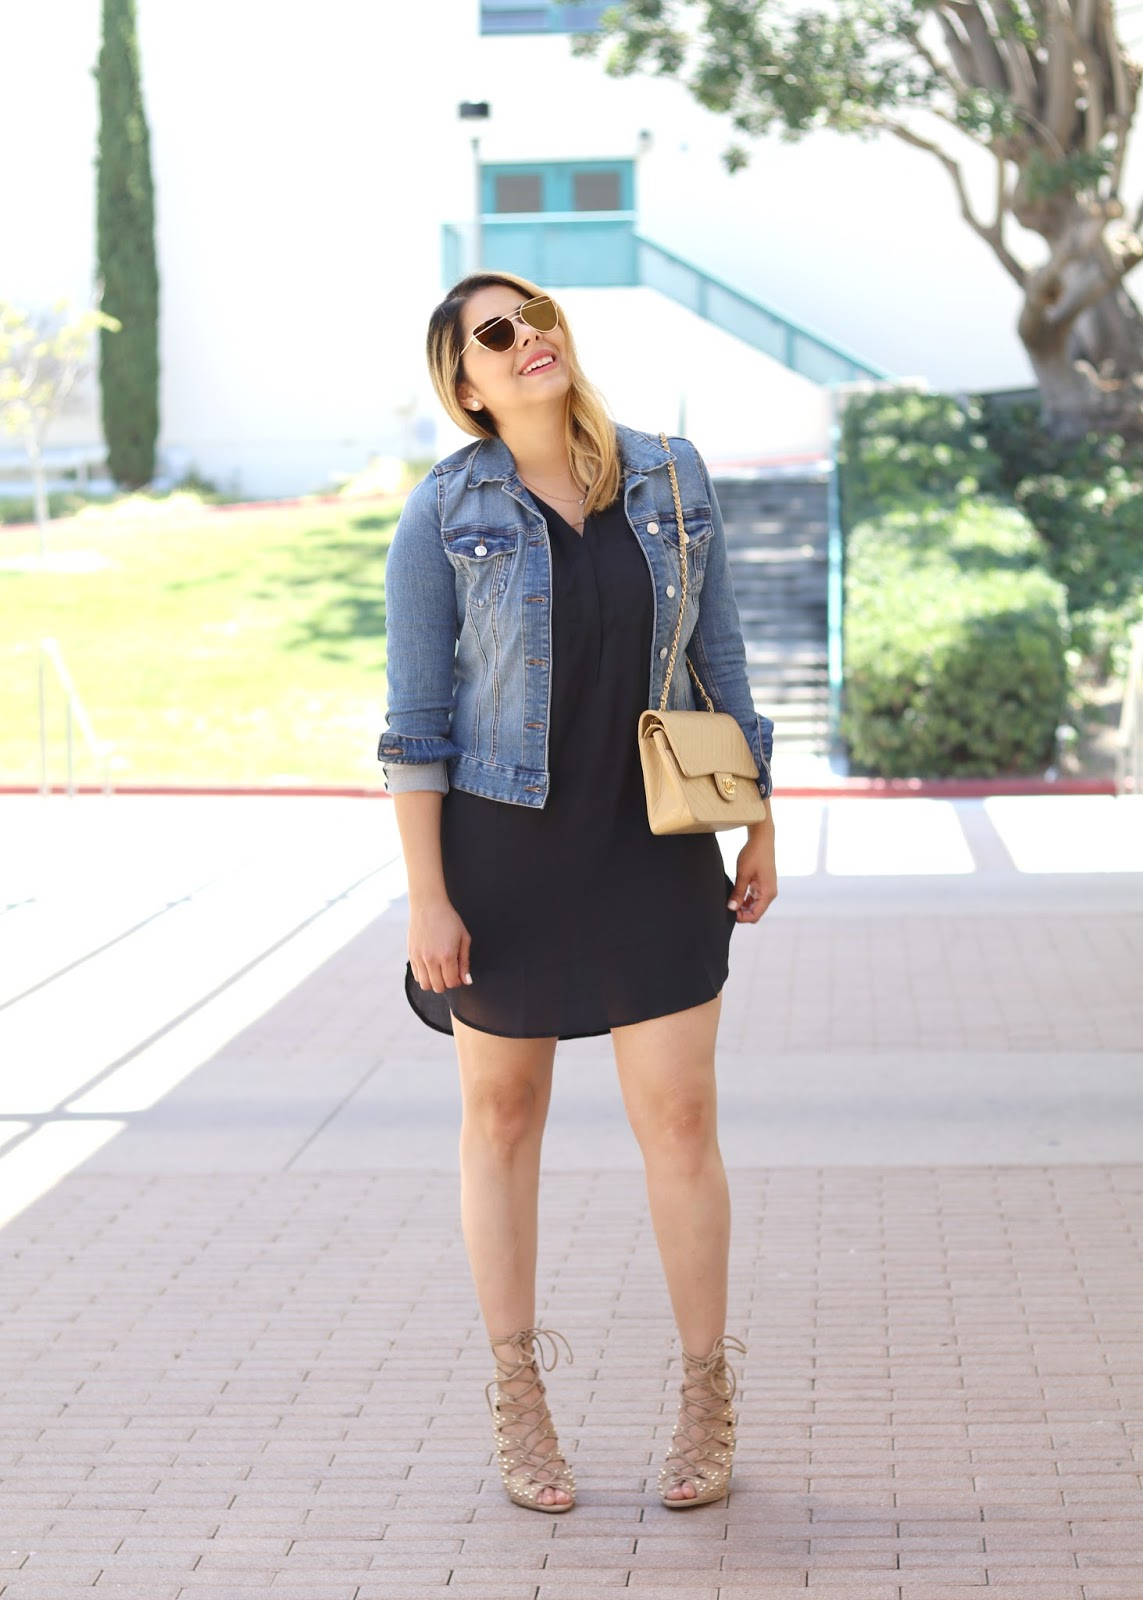 Jean Jacket and Black Dress Outfit, san diego fashion blogger, jean jacket outfit, black shirtdress with nude accessories